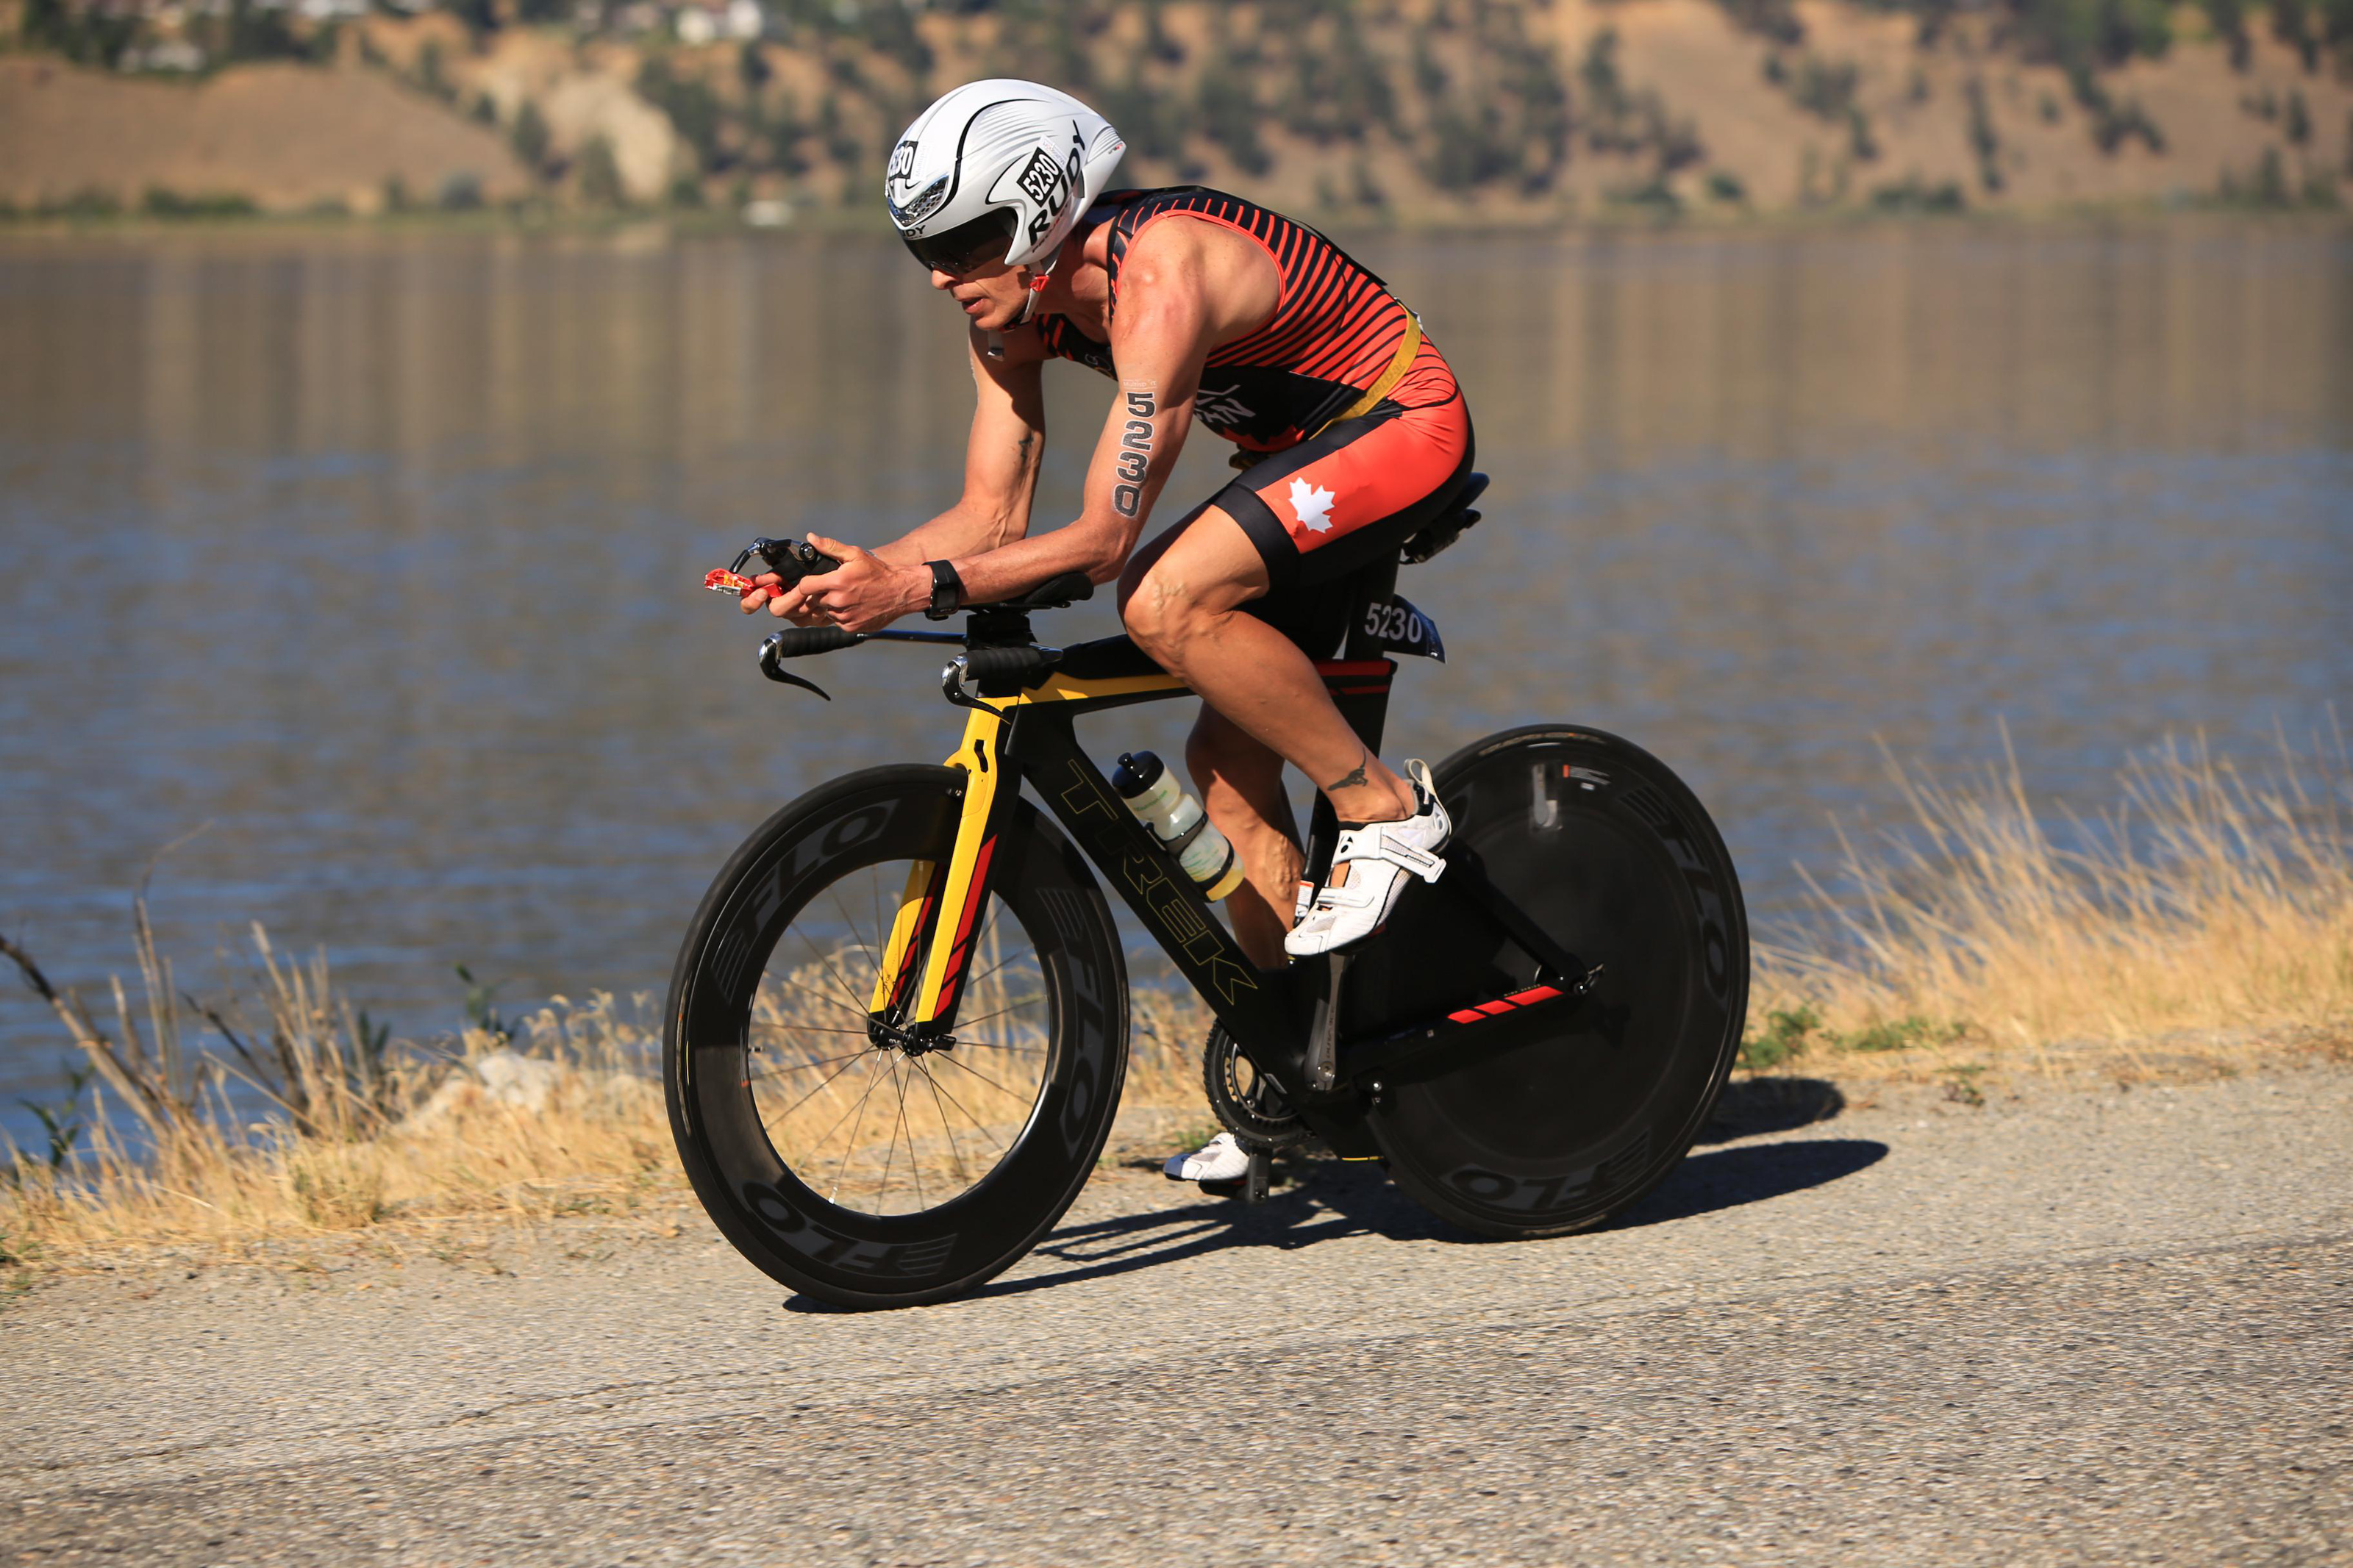 Mike Neill Riding Bike at 2017 ITU World Long Distance Triathlon Championship in Victoria